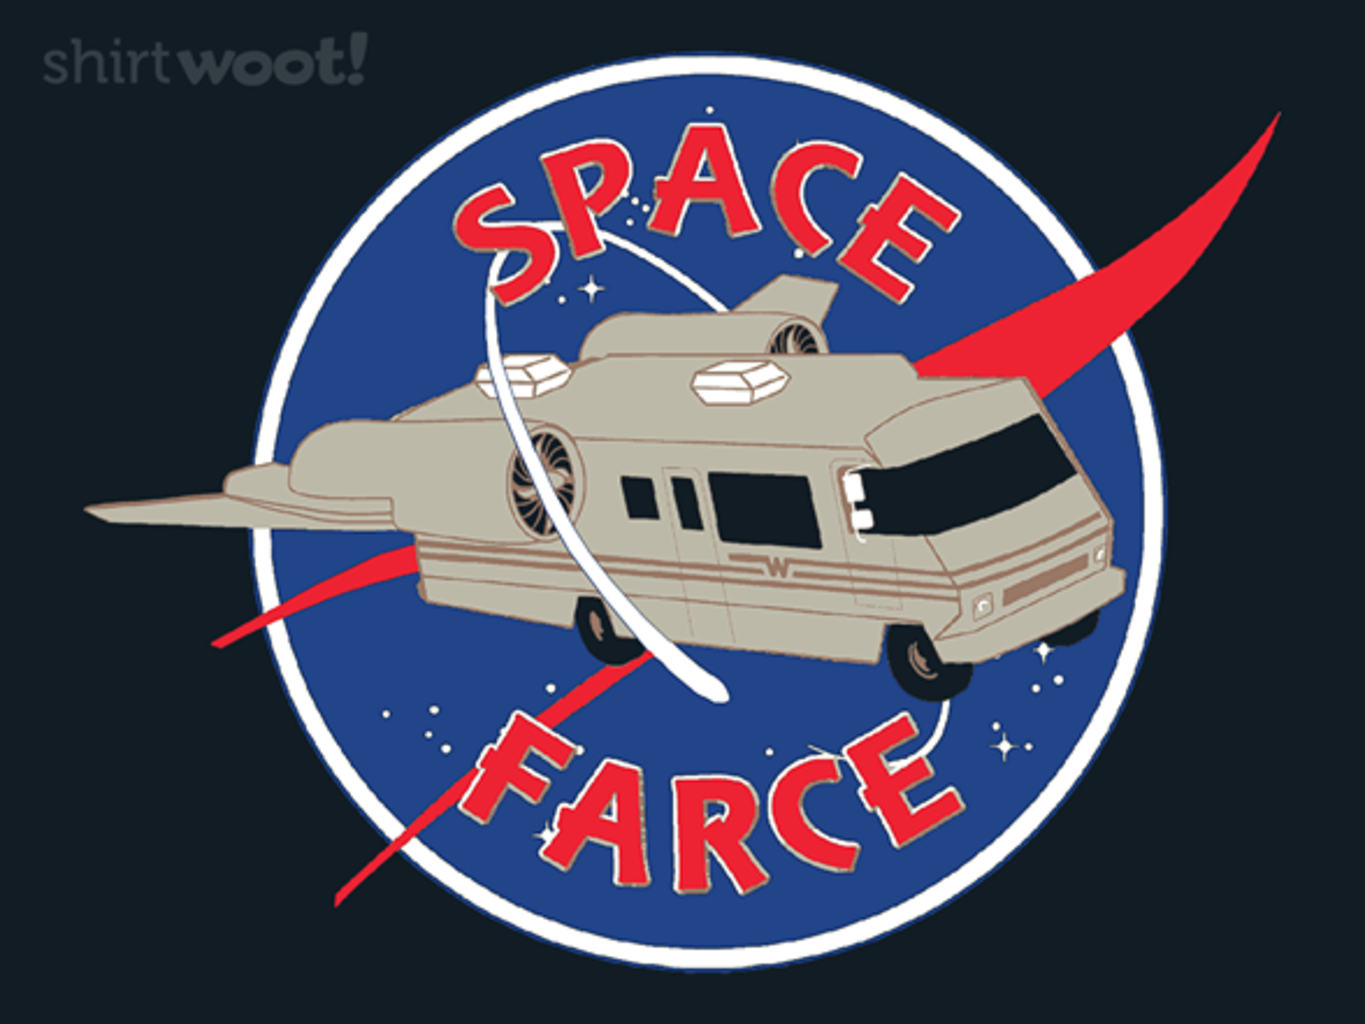 Woot!: Space Farce